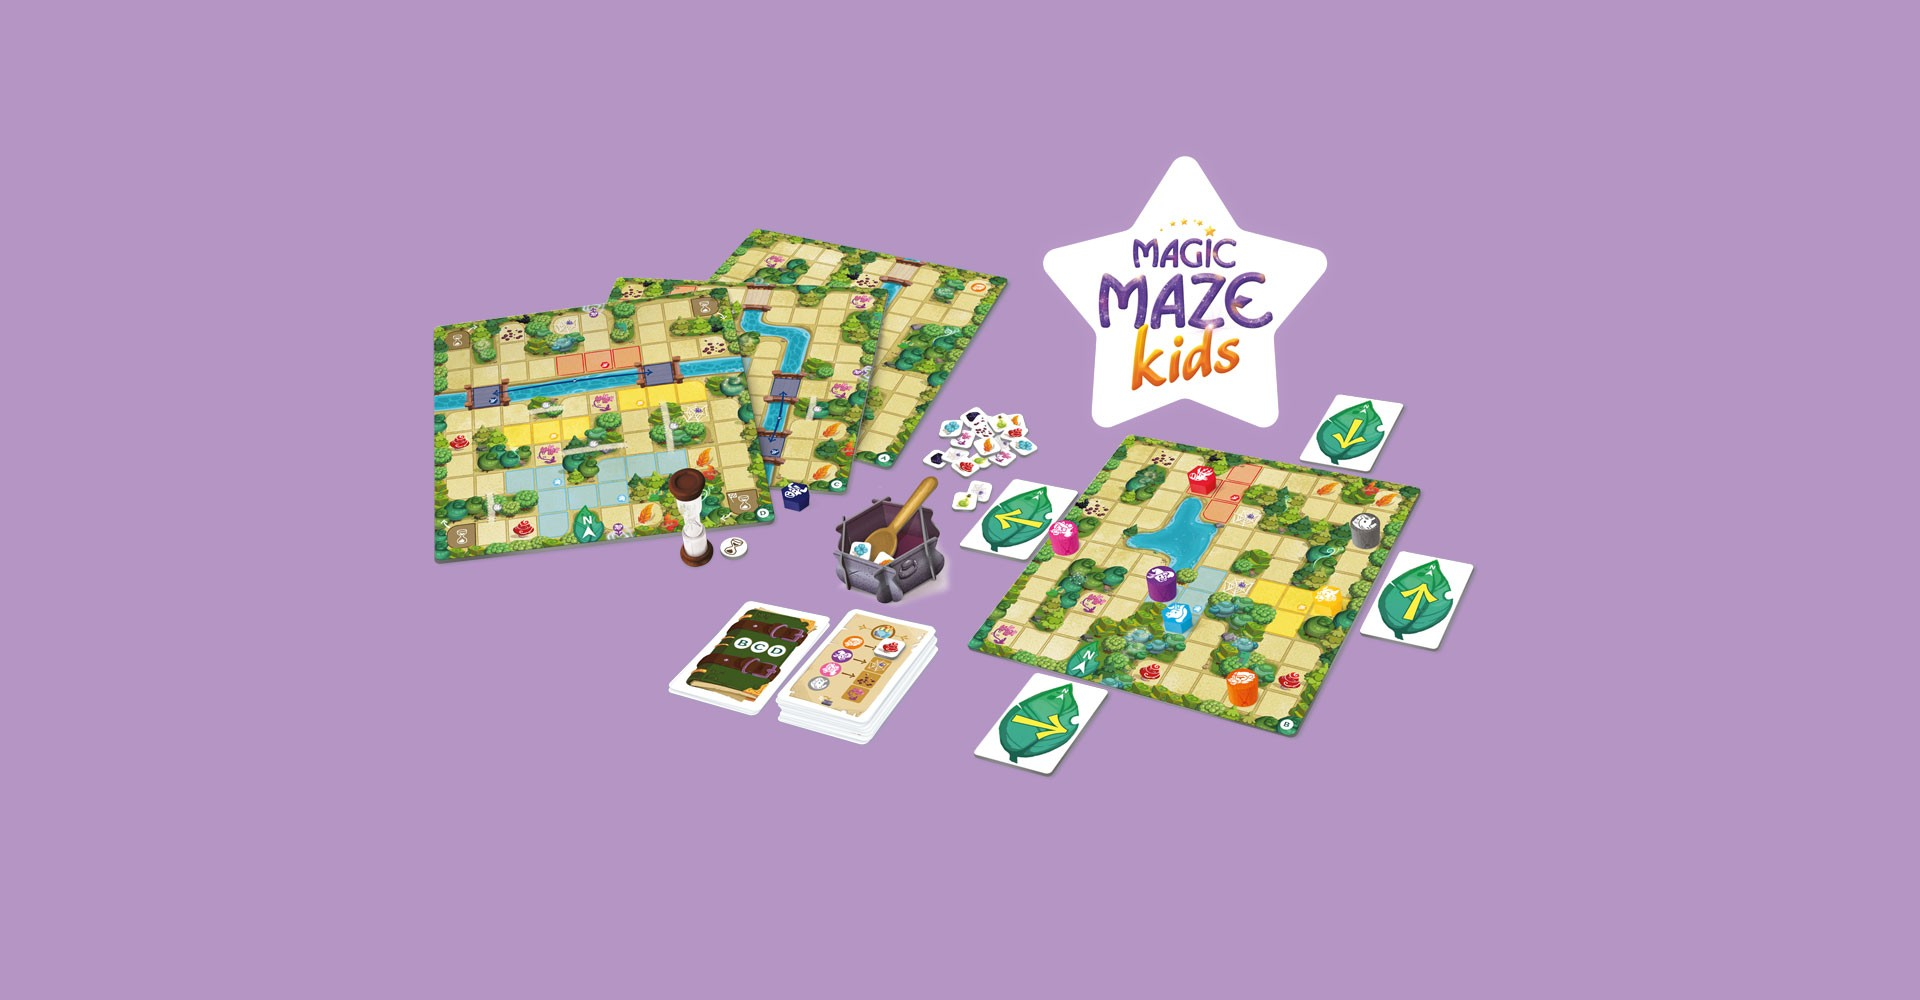 Set up of Magic Maze Kids